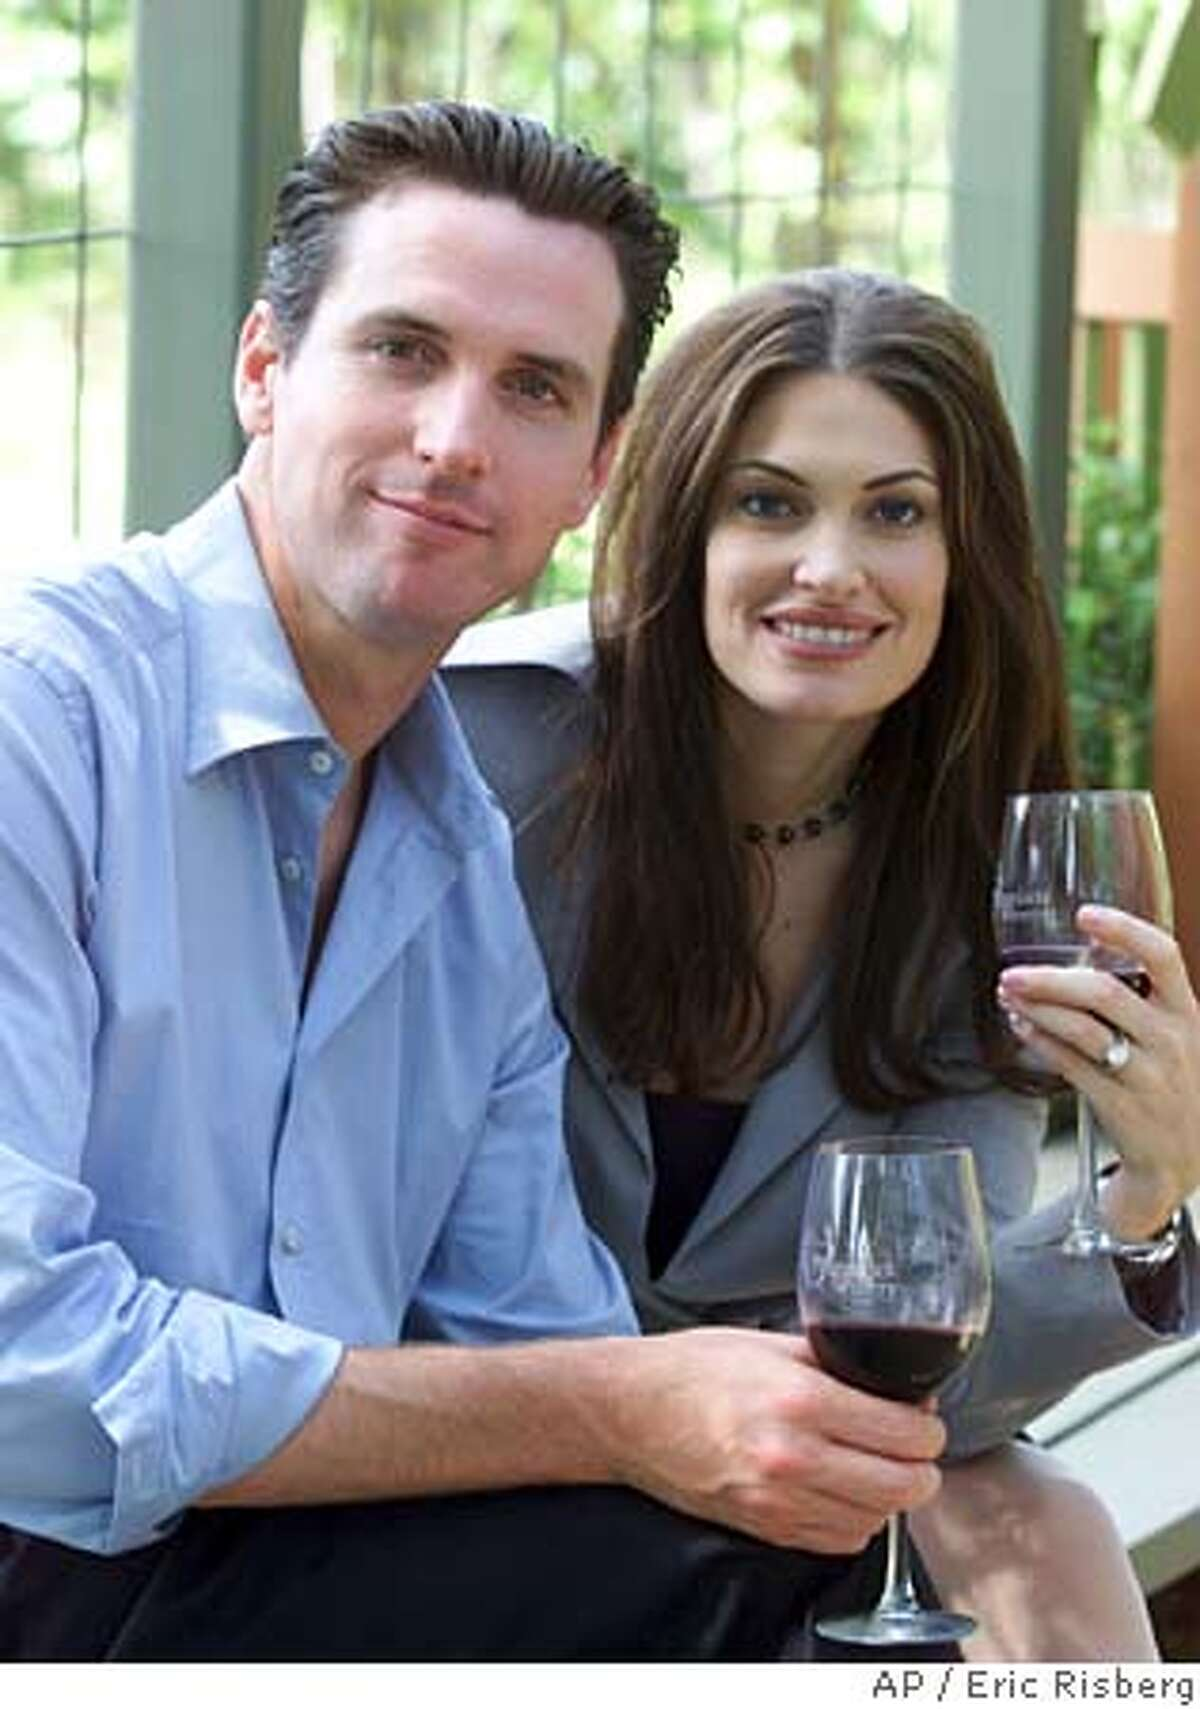 Gavin Newsom, left, and his wife, Kimberly Guilfoyle Newsom, right, pose for a picture at the PlumpJack winery in Oakville, Calif., Friday June 7, 2002. San Francisco Mayor Gavin Newsom and his wife, Court TV legal analyst Kimberly Guilfoyle Newsom, are filing for divorce after three years of marriage. In a joint statement issued Wednesday by the mayor's office, the Newsoms cited the strain posed by their high-profile, bicoastal careers as the reason for the split. (AP Photo/Eric Risberg) A JUNE 7 2002 PHOTO Ran on: 01-06-2005 Mayor Gavin Newsom and wife Kimberly Guilfoyle Newsom are getting divorced.